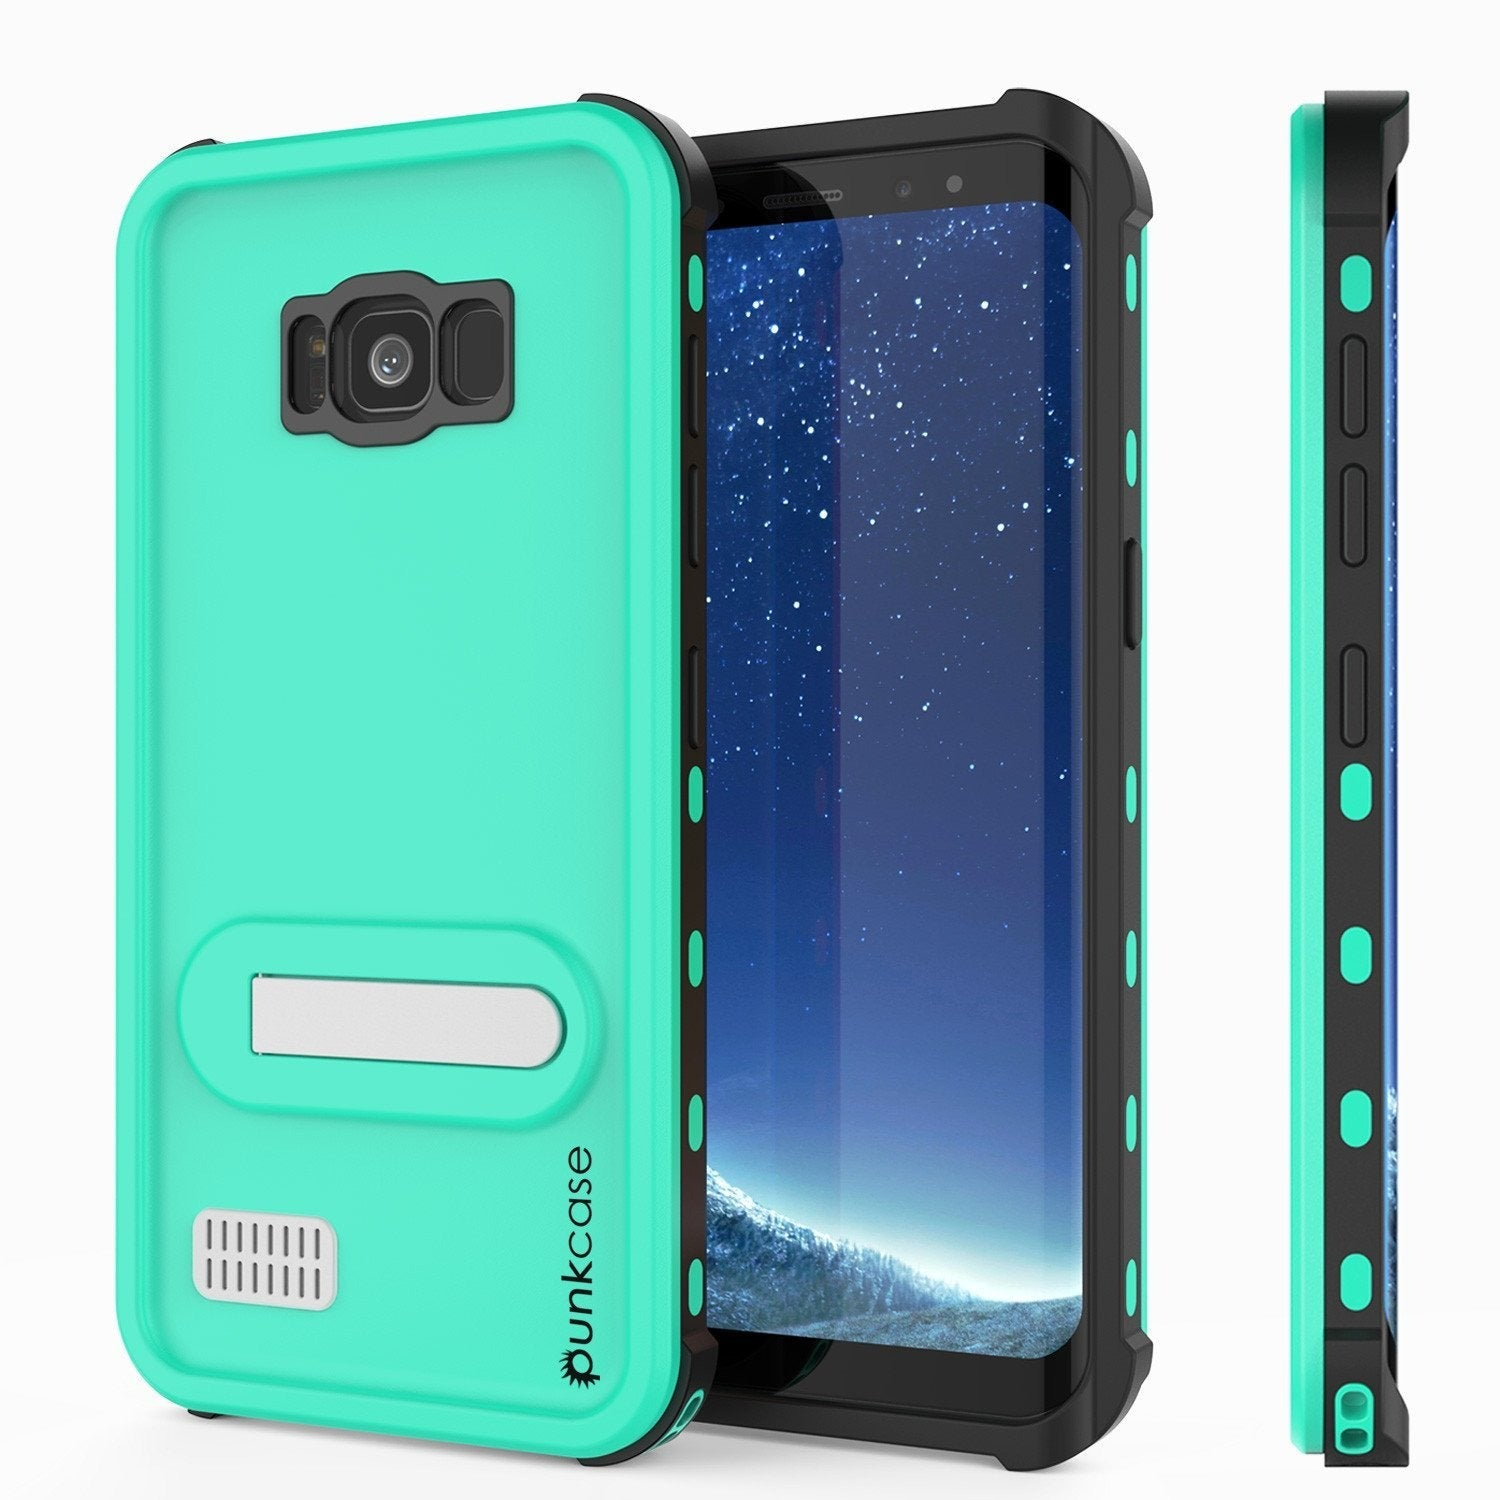 Galaxy S8 Plus Waterproof Shock/Snow Proof Case [Teal]